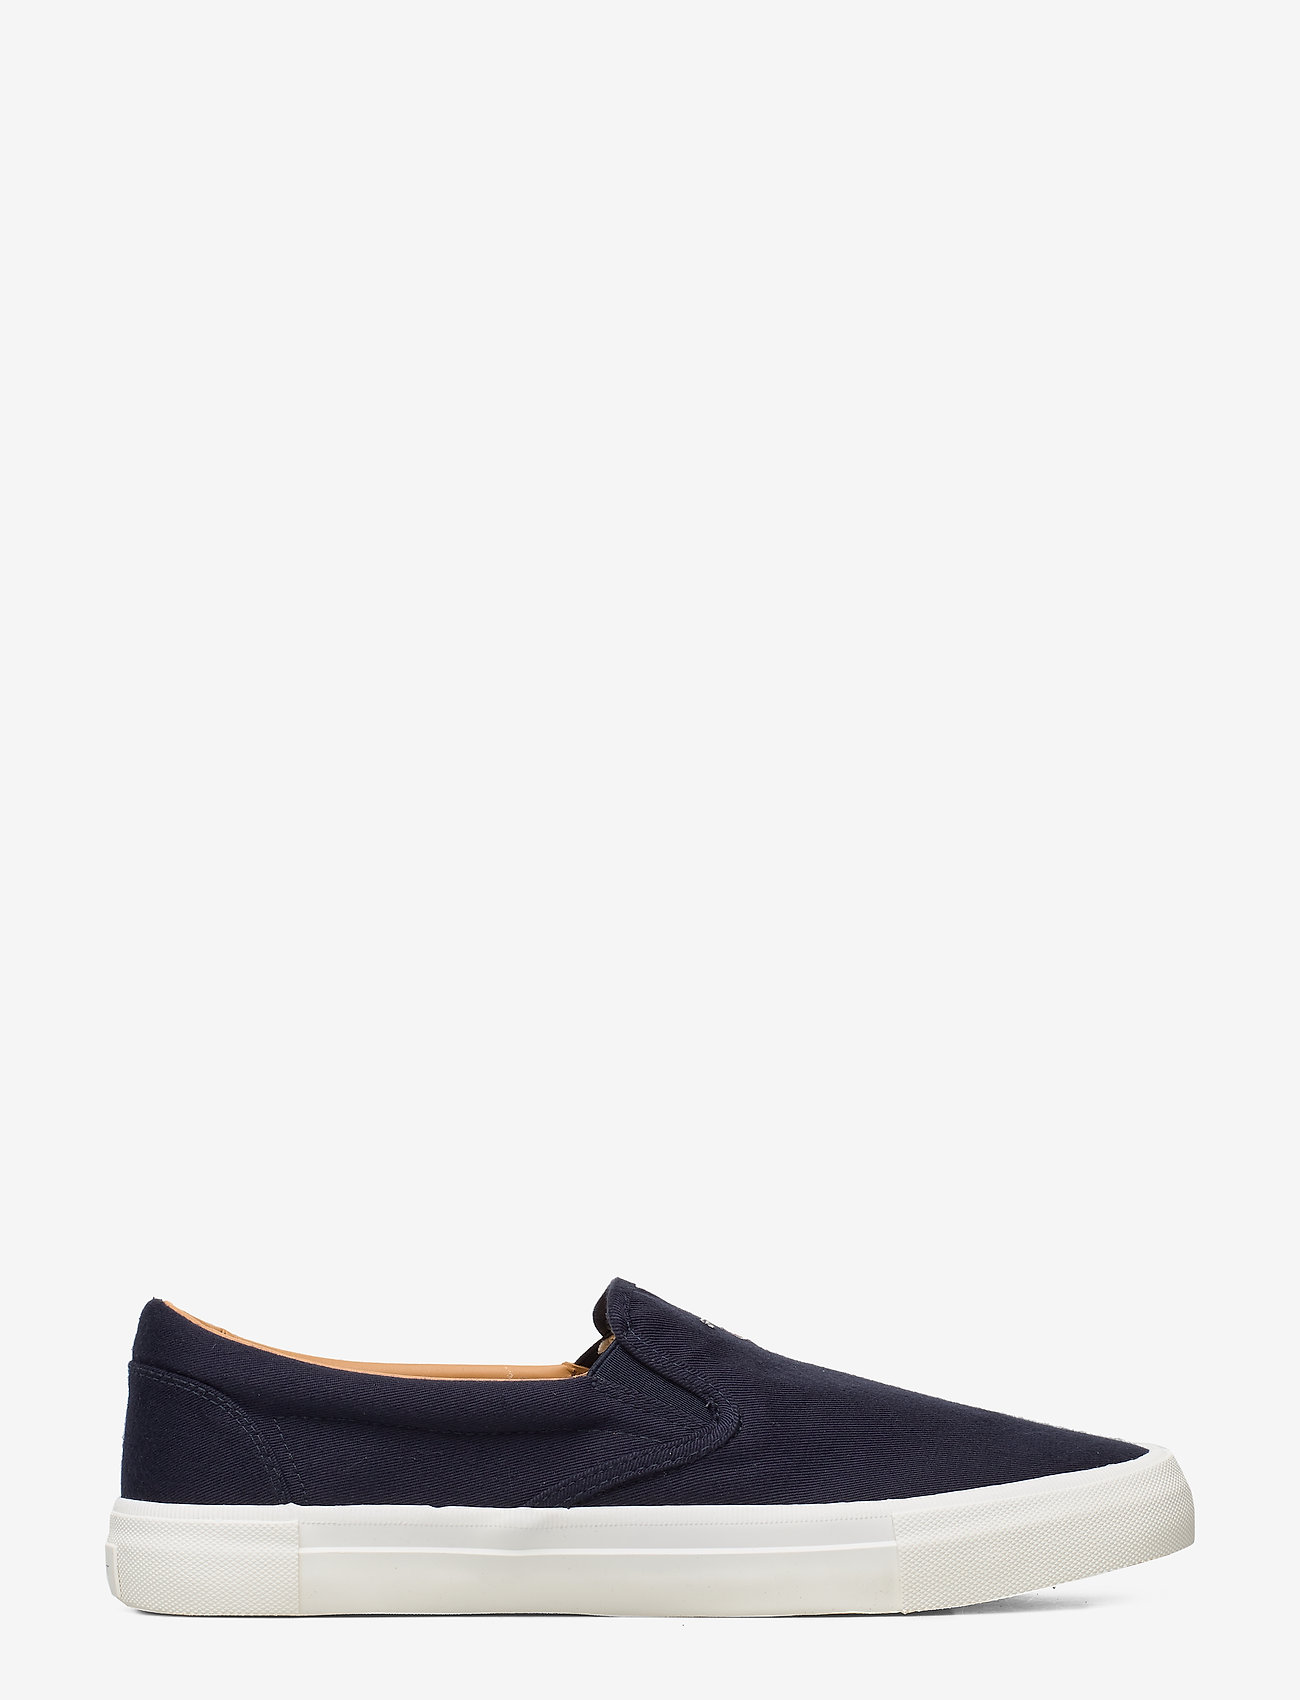 GANT - Sundale Slip-on shoes - baskets slip-ons - marine - 1